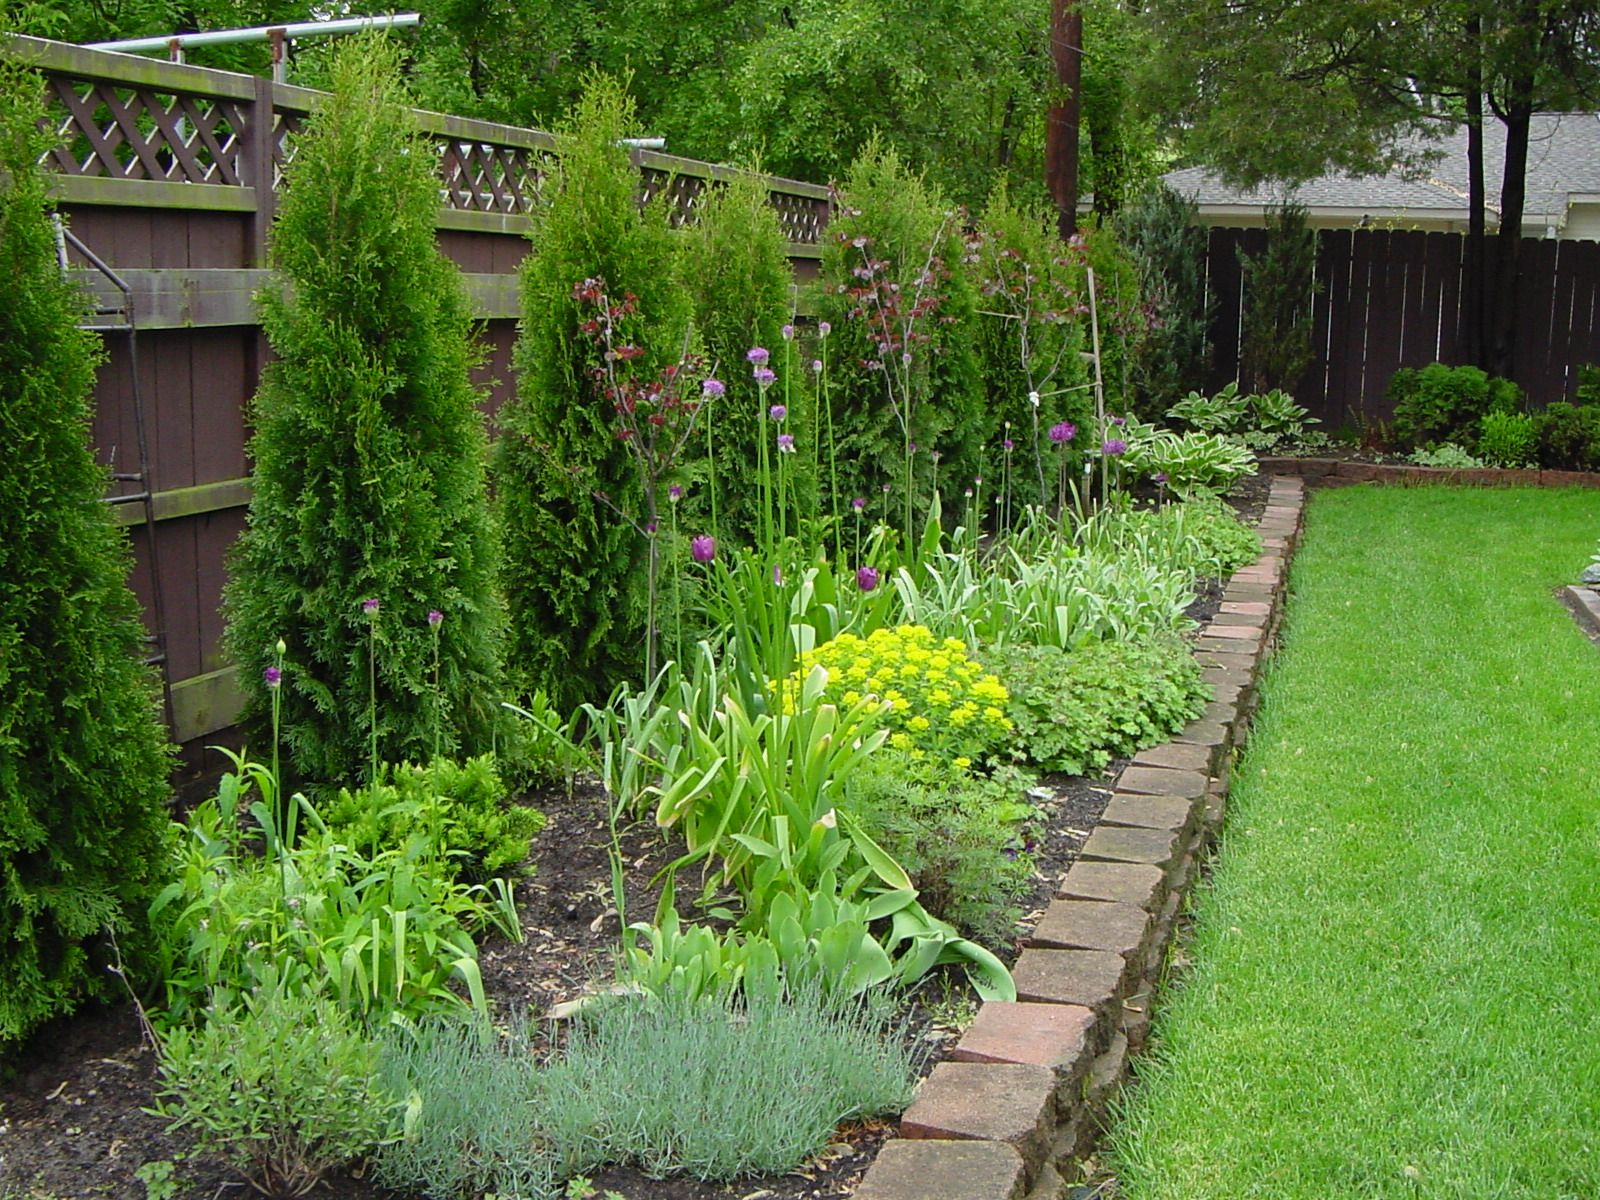 image detail for image showing arborvitae planted along fence line - Garden Ideas Along Fence Line